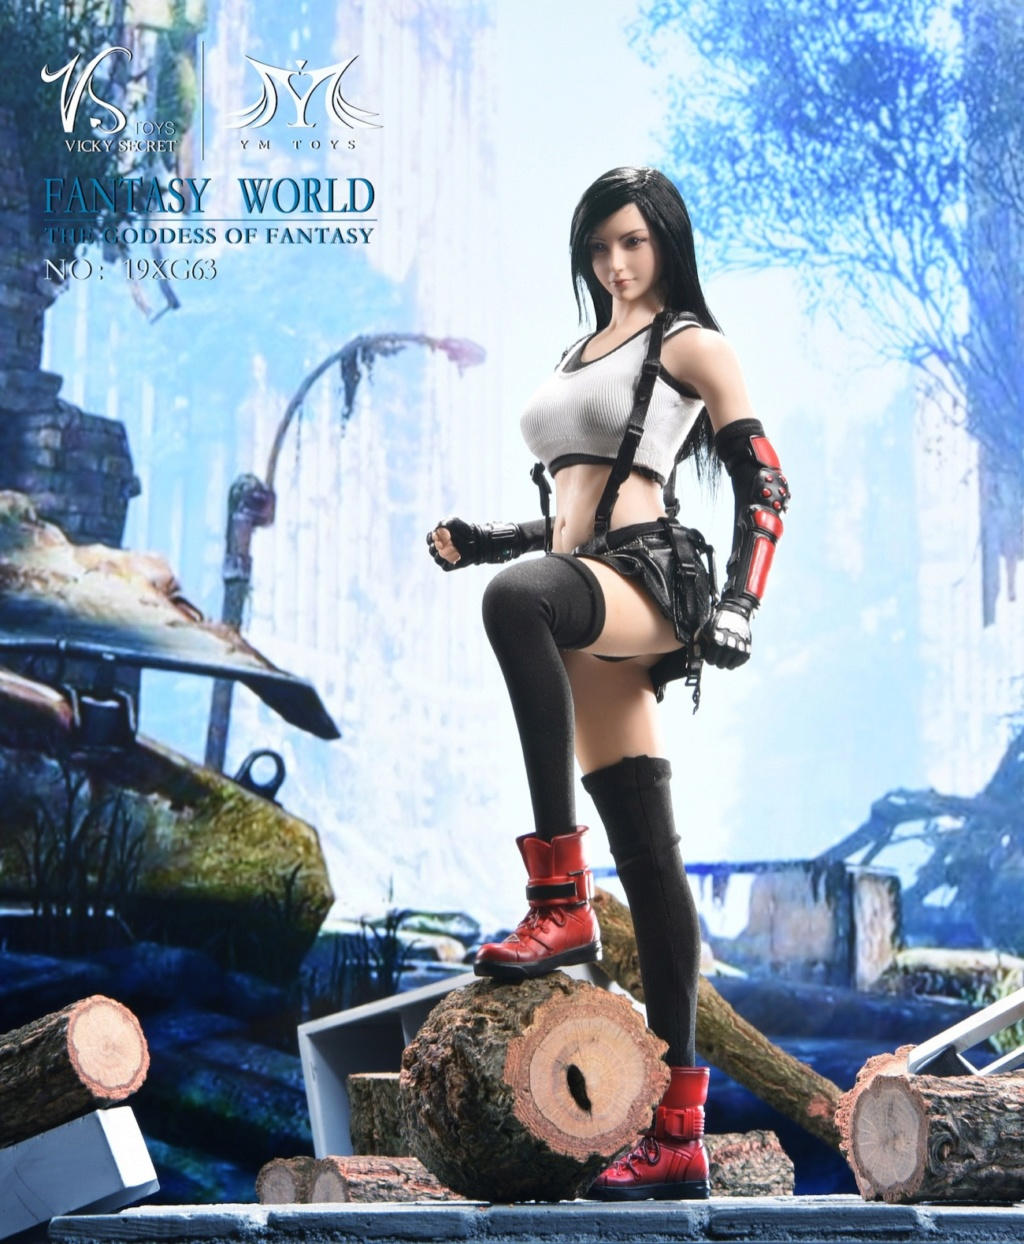 sci-fi - NEW PRODUCT: VSTOYS: 1/6 Tifa 3.0 action figure-double head carved encapsulated body configuration # 19XG63 16222510